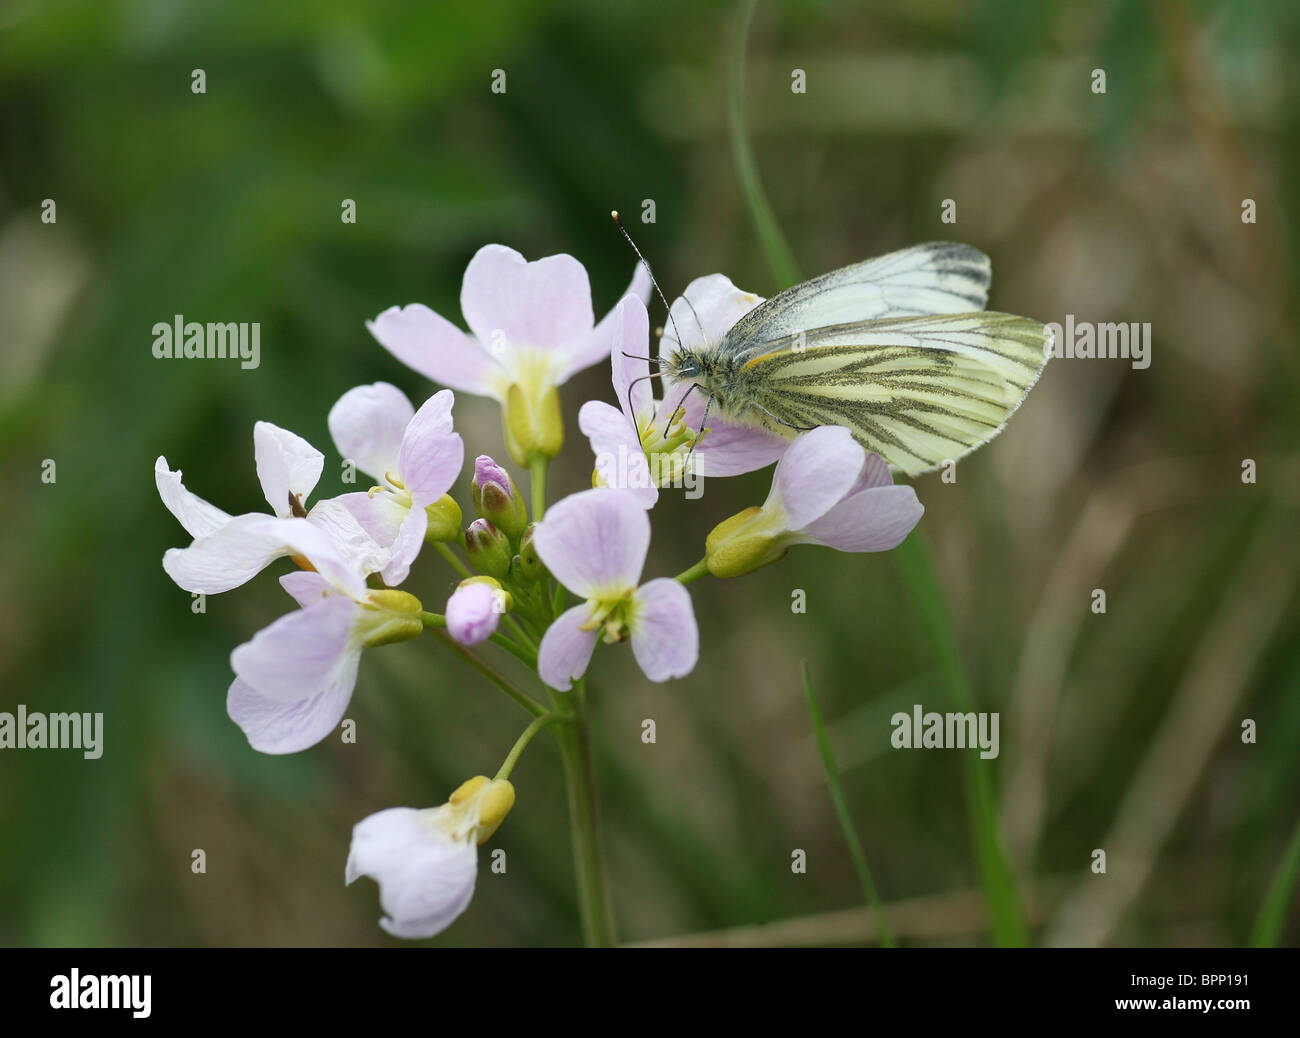 A close up of a Green Veined White (Pieris napi) butterfly on a Cuckooflower or Lady's Smock flower (Cardamine - Stock Image